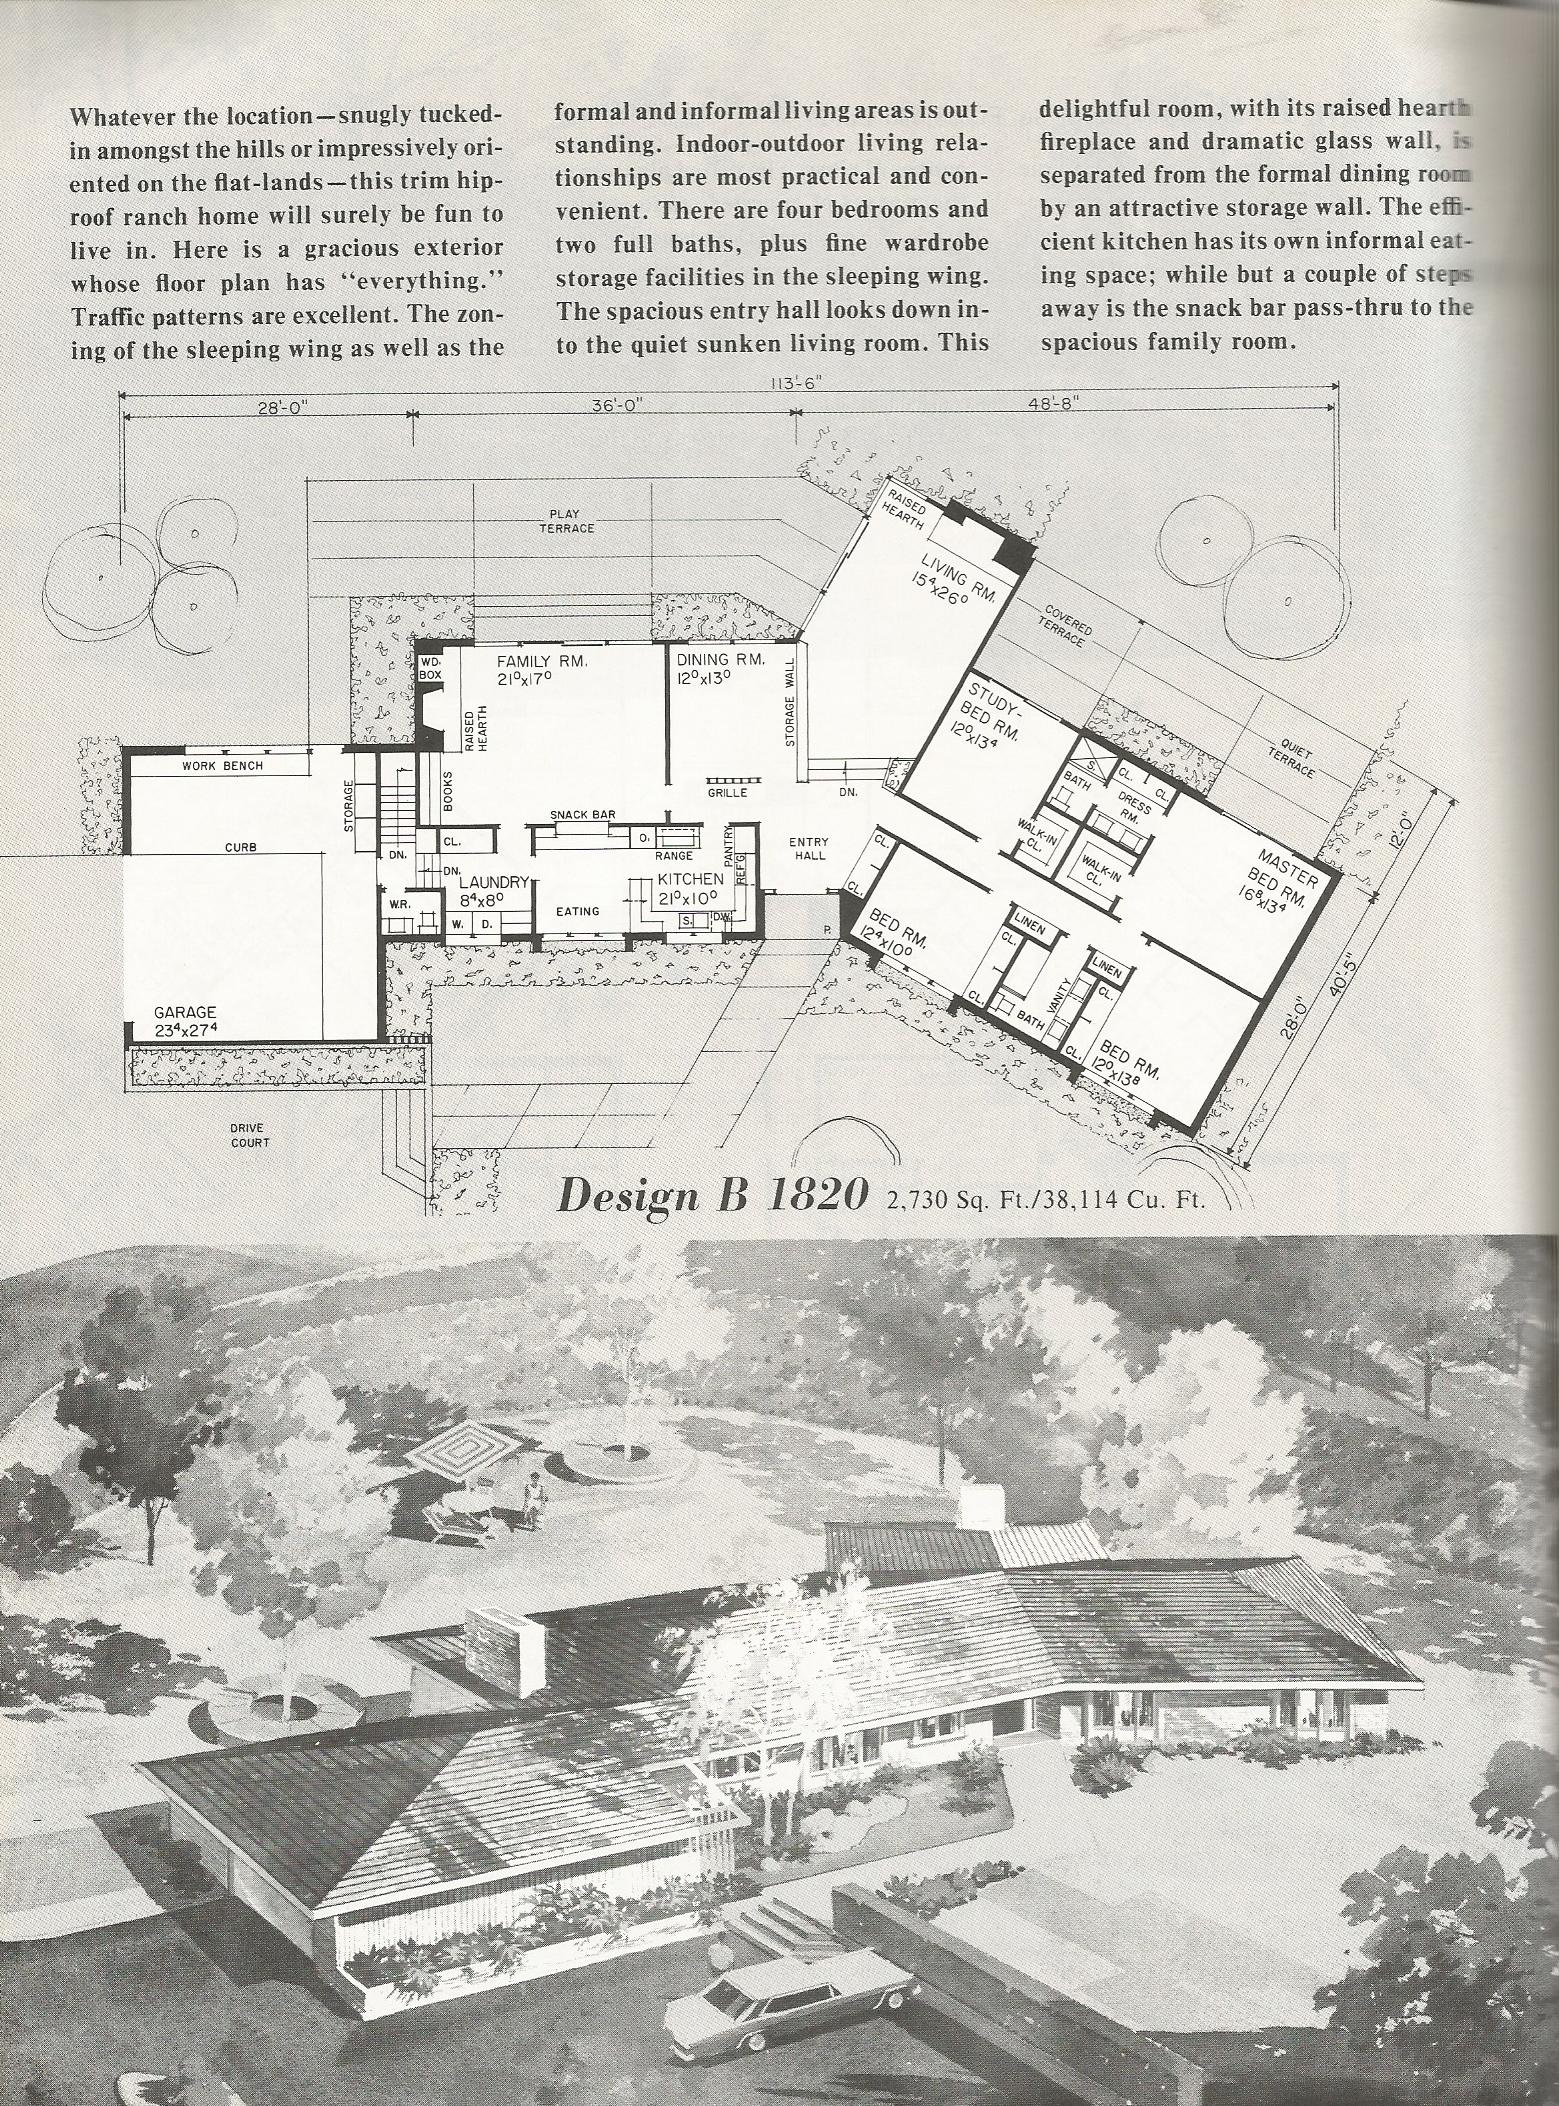 Vintage house plans 1820 antique alter ego for Vintage floor plans